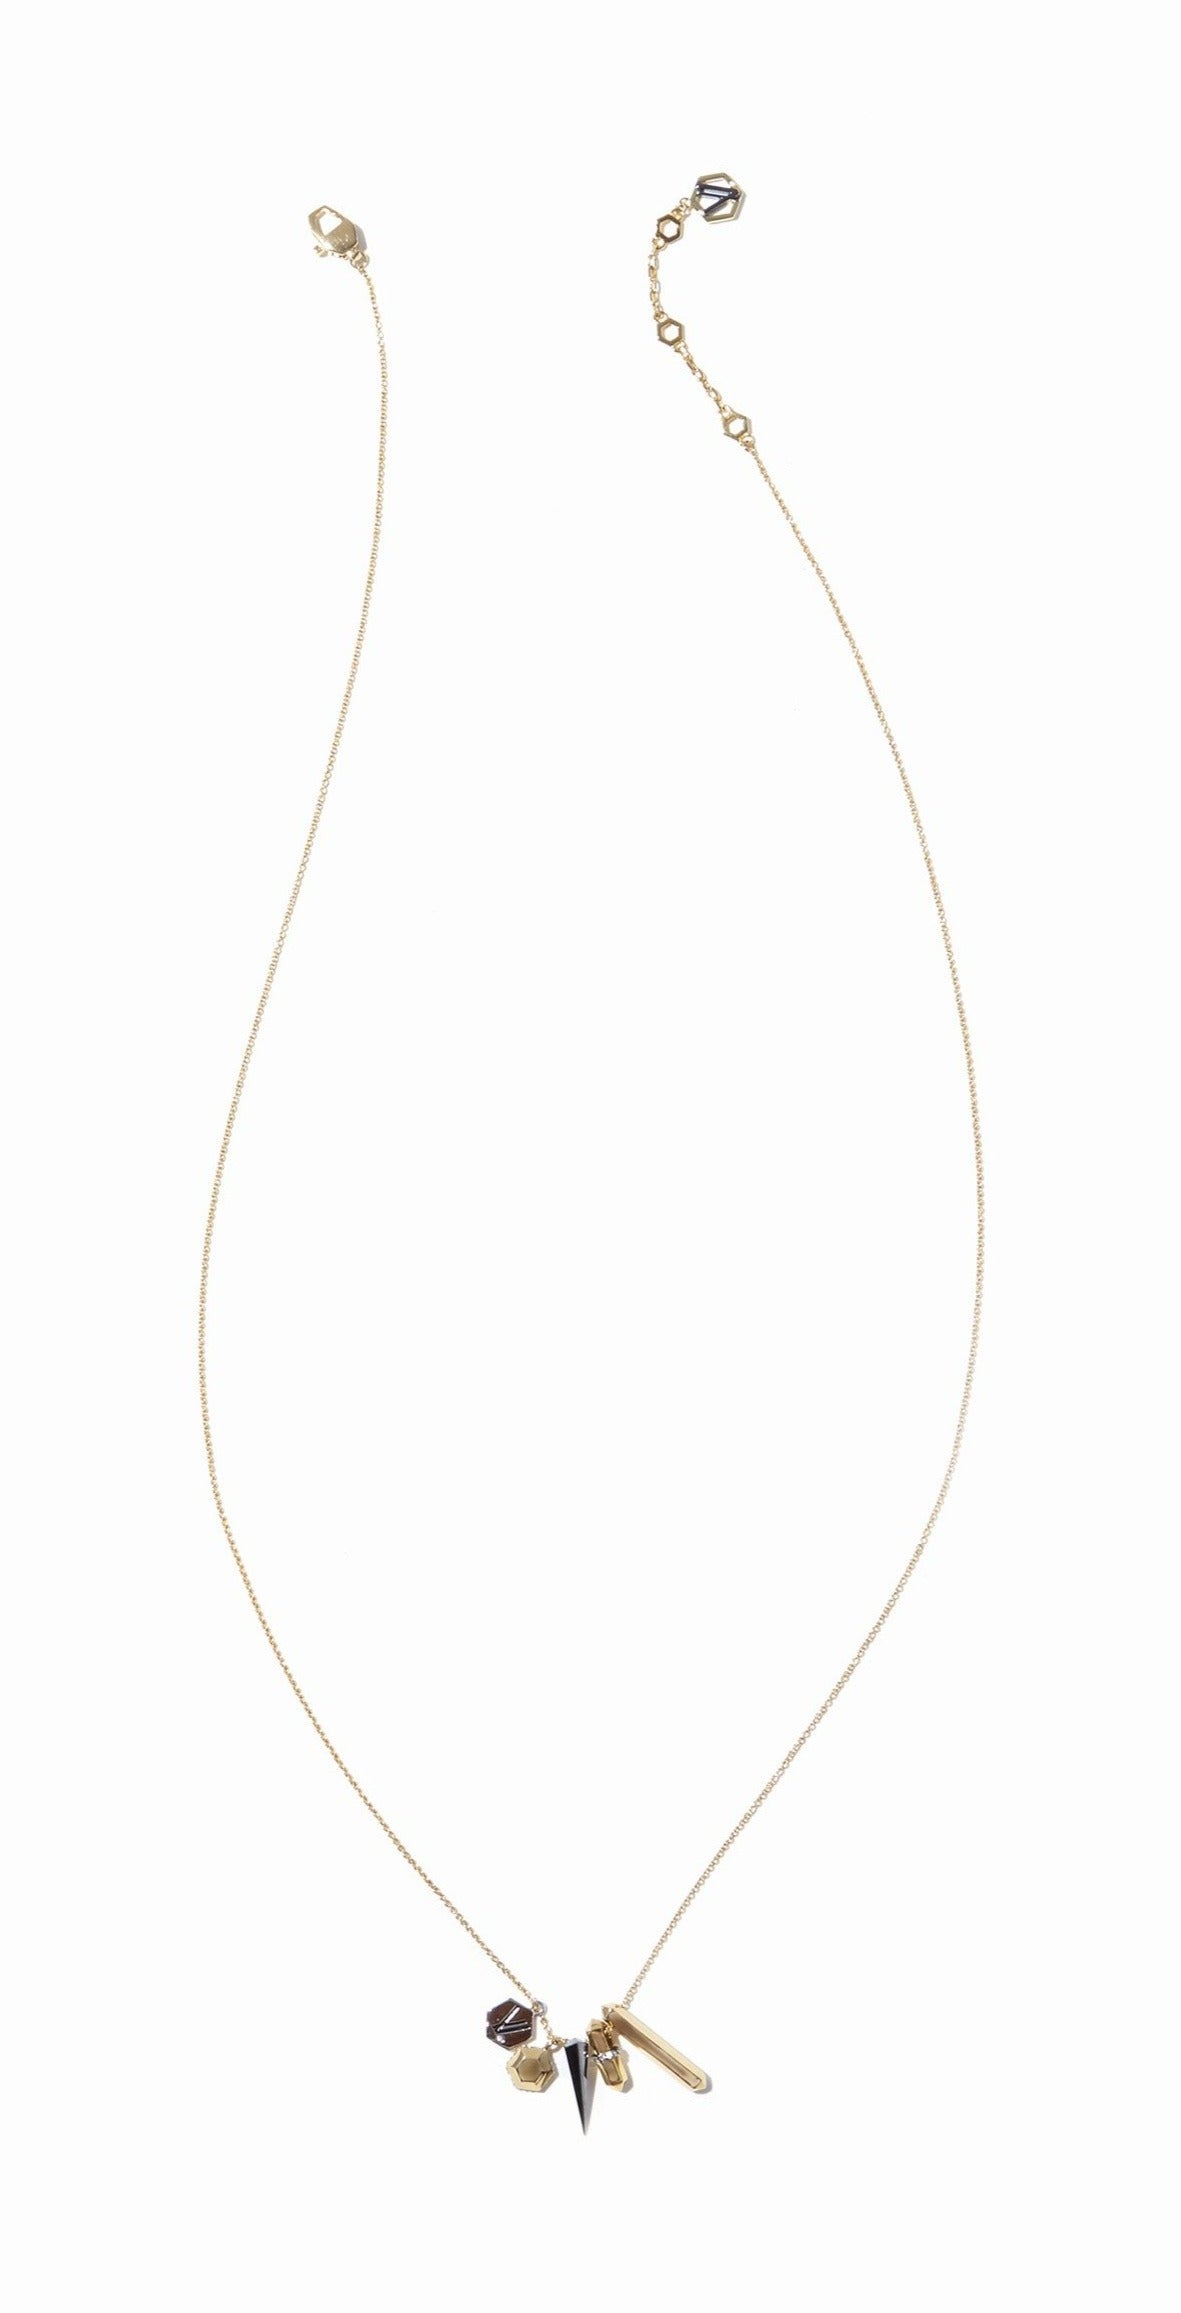 Colette Charm Necklace - 3 Tone Gold, Rhodium and Hematite